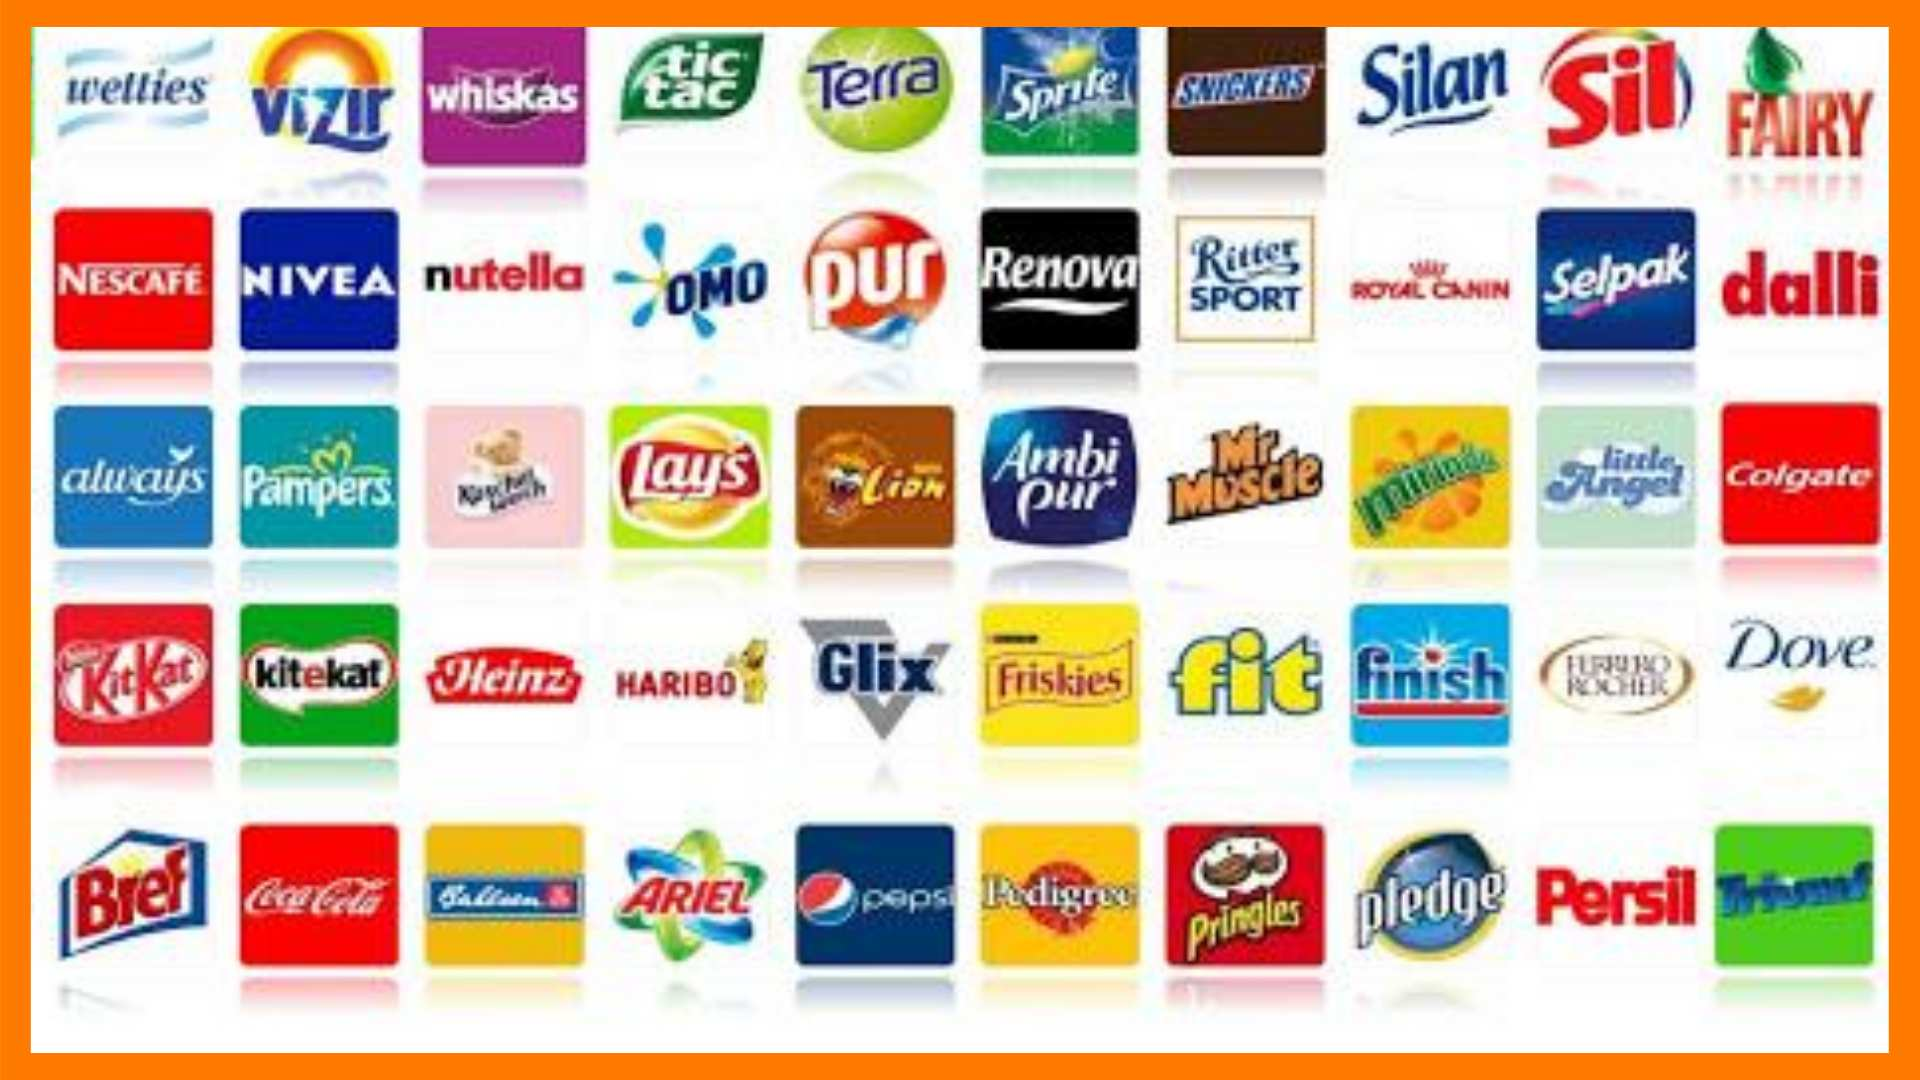 Some Thriving Brands of FMCG Across the World